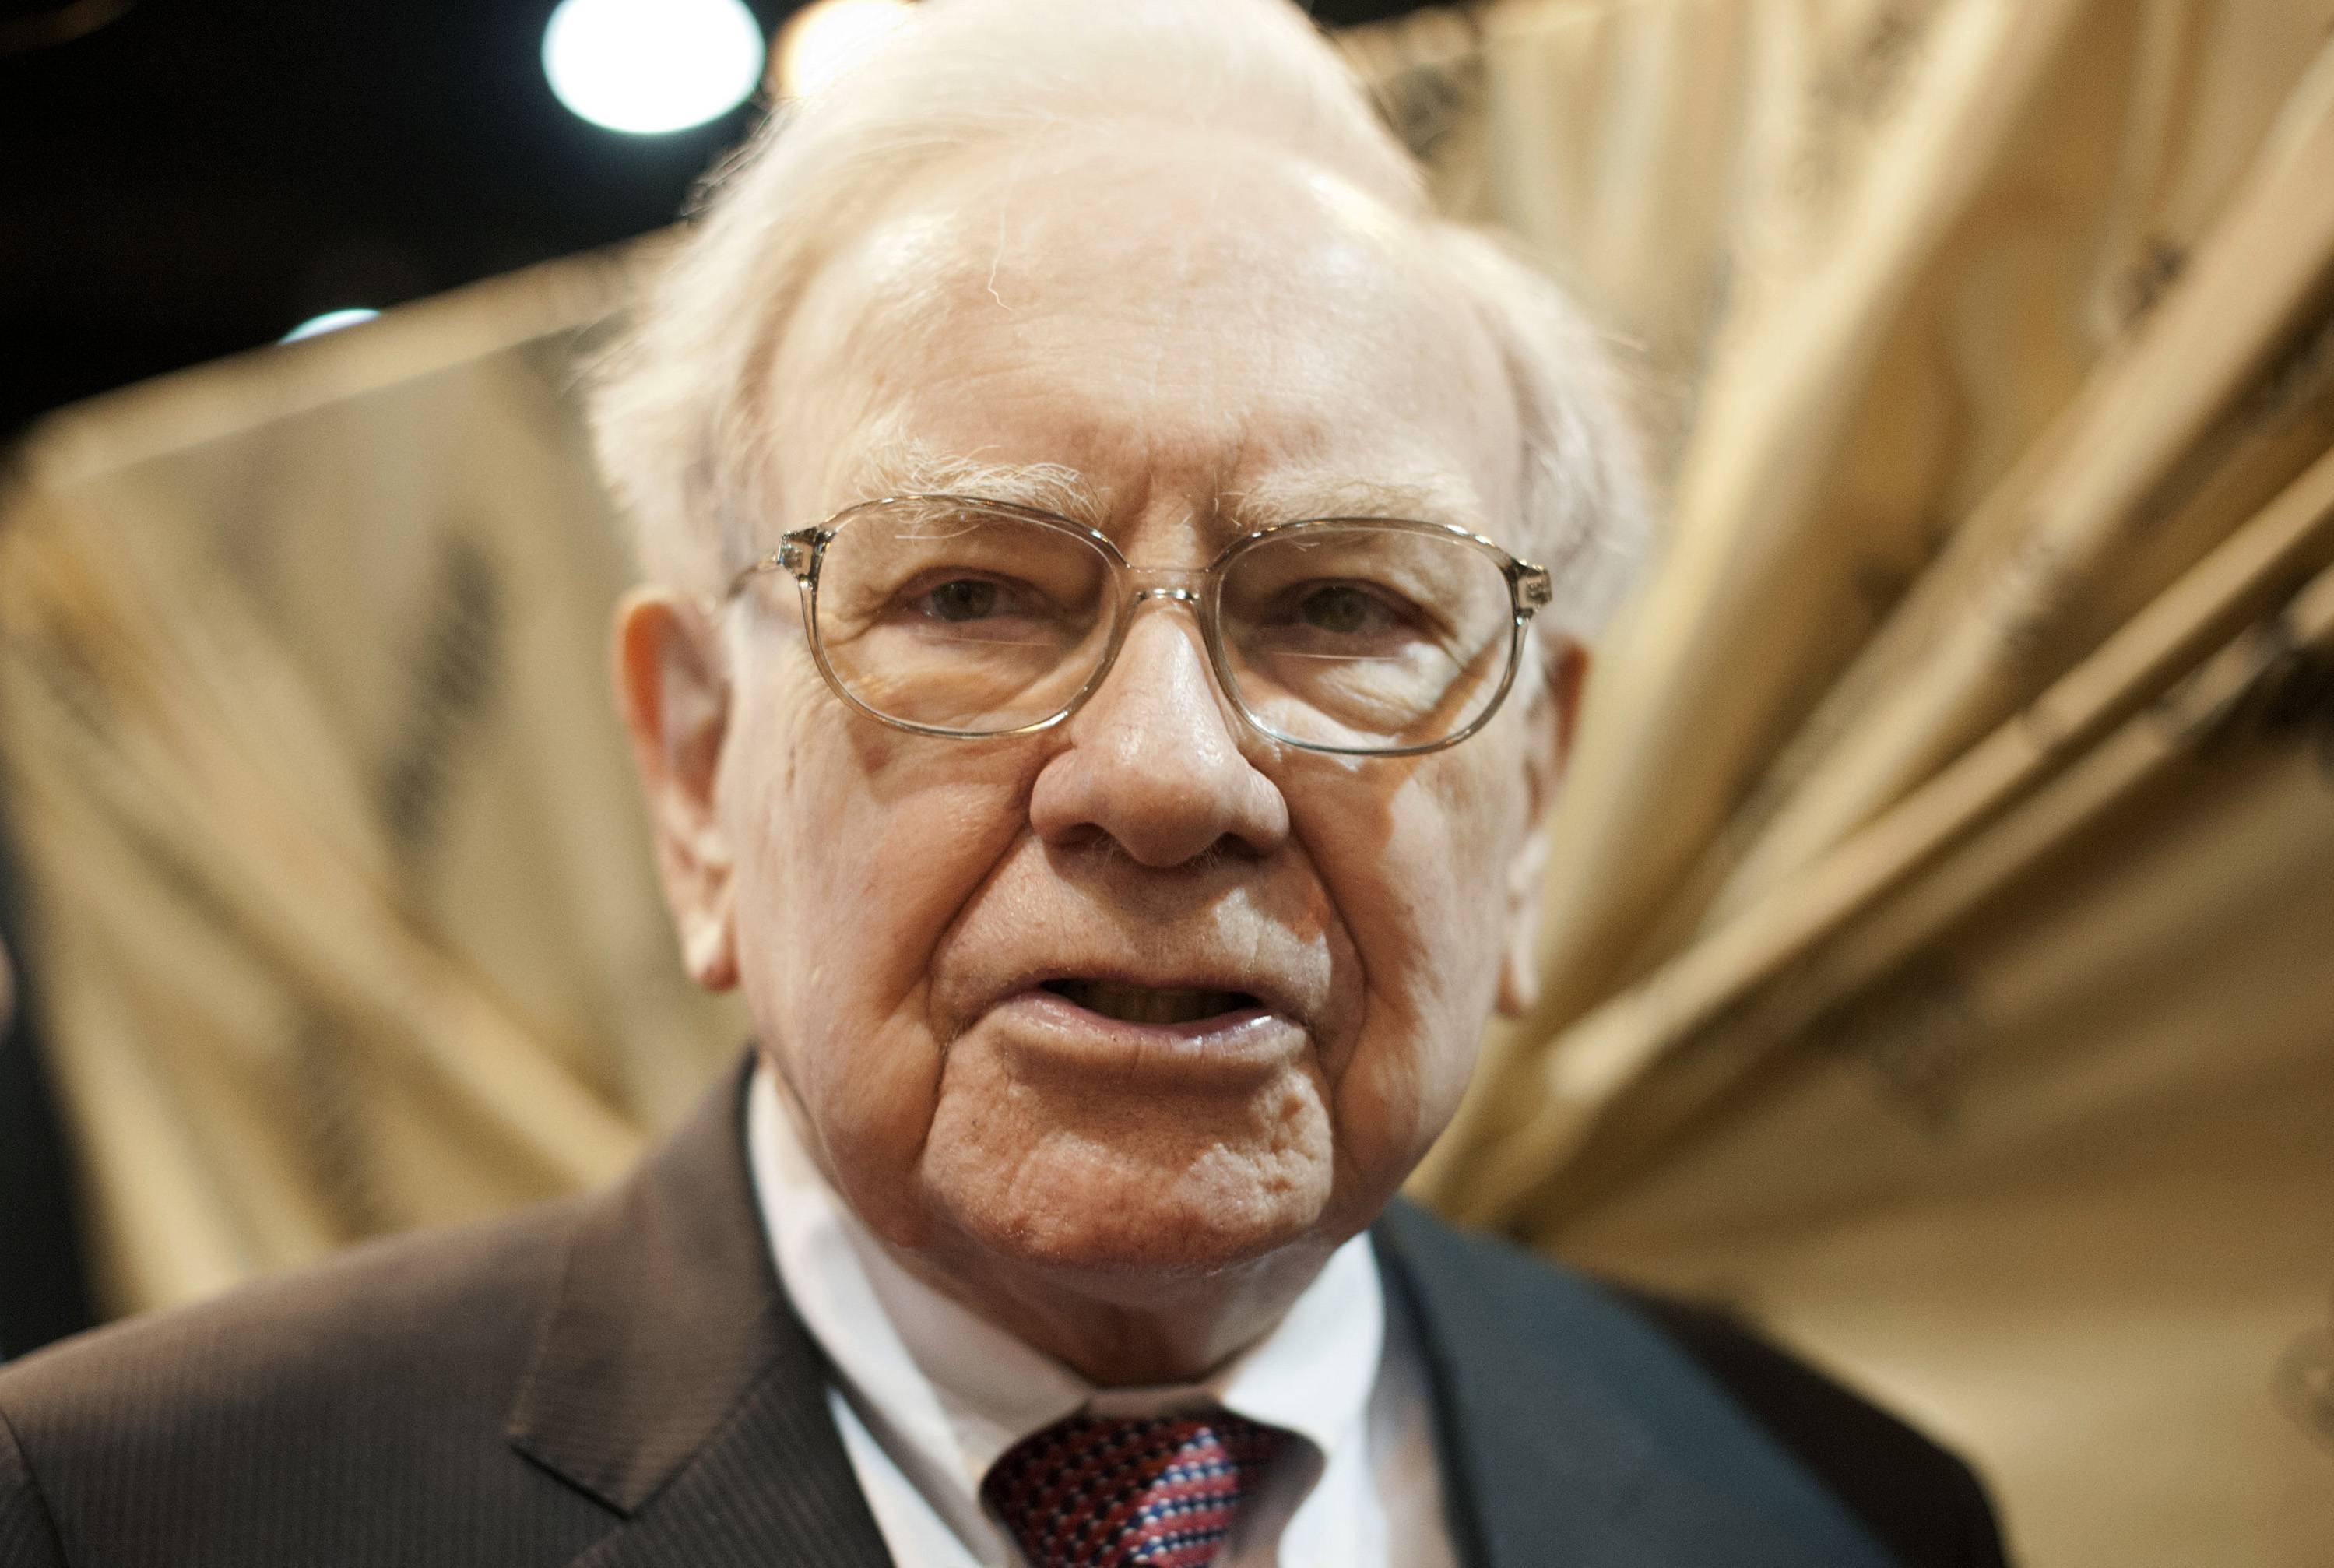 Warren Buffett, chairman of Berkshire Hathaway Inc., tours the exhibition floor prior to the Berkshire Hathaway shareholders meeting in Omaha, Nebraska, U.S.